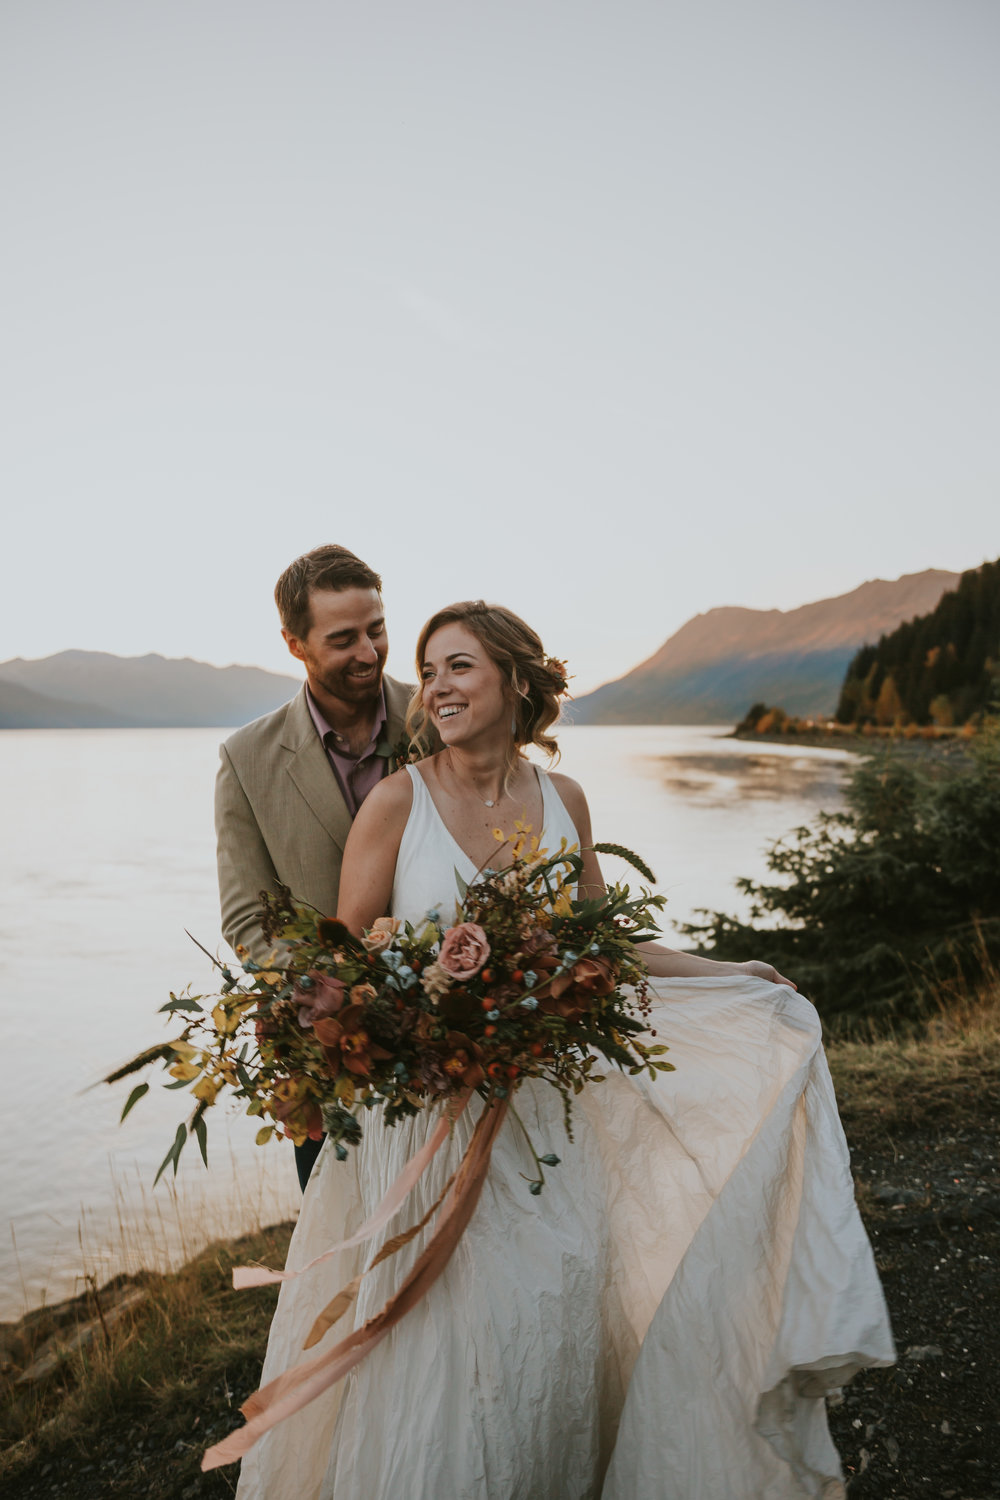 LINDSEY AND ERIC WEDDING - GIRDWOOD, ALASKA